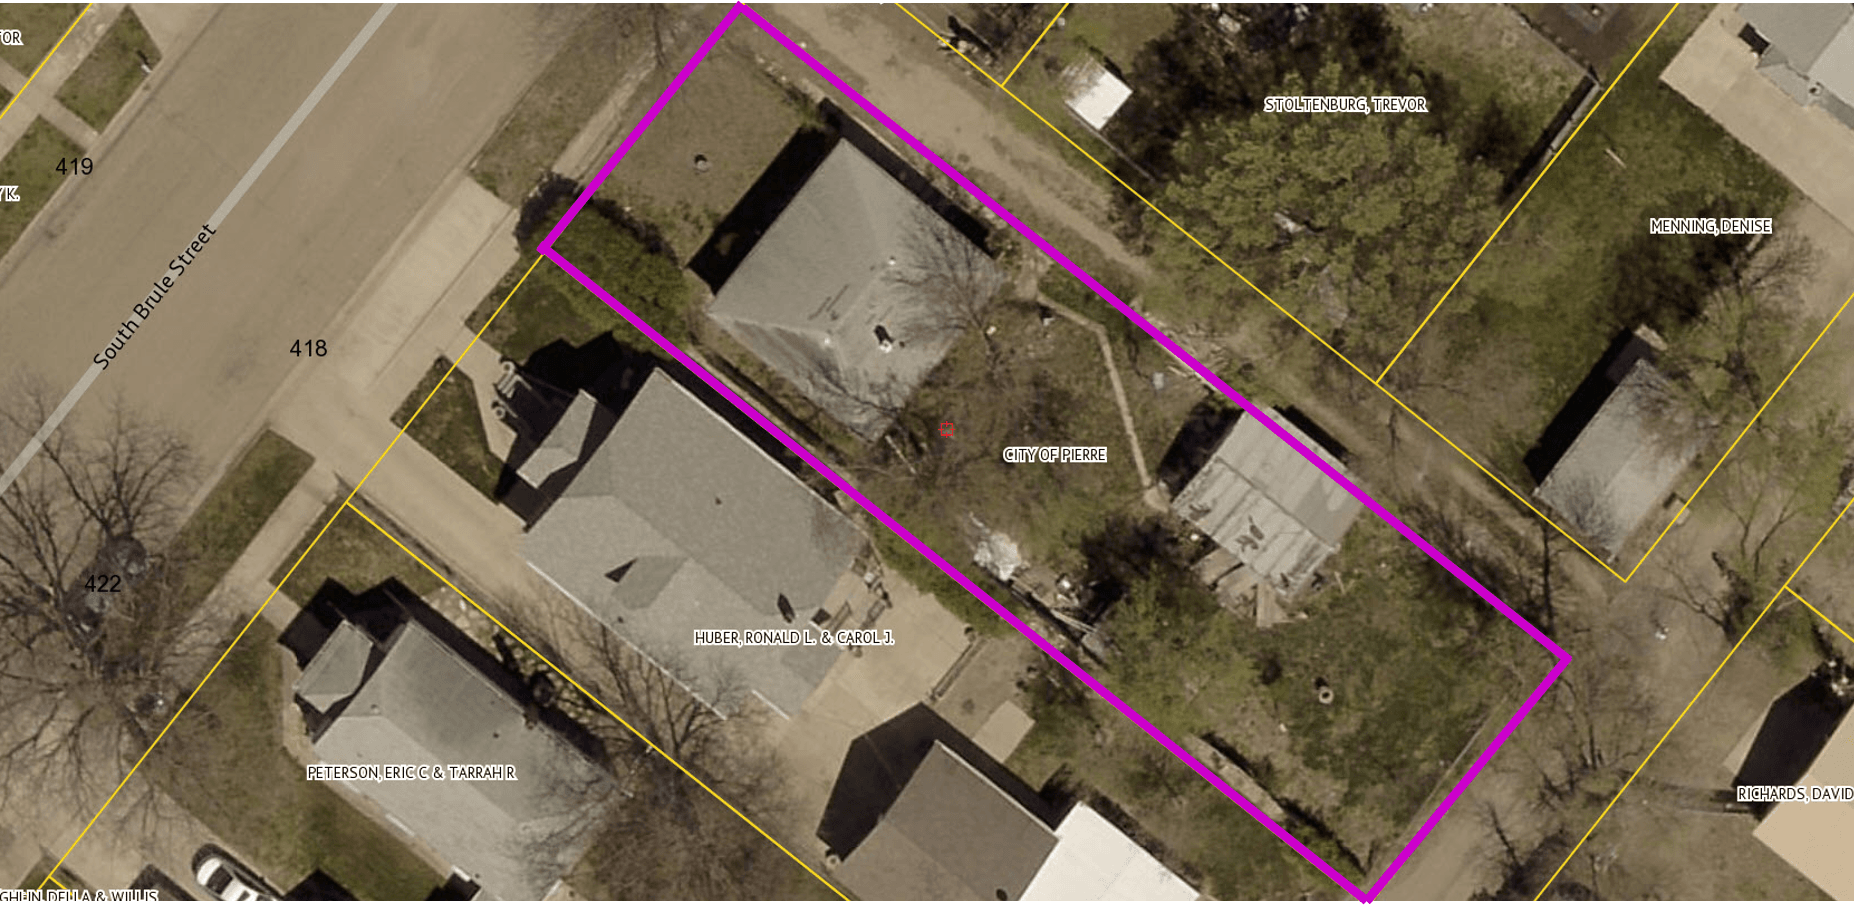 SURPLUS PROPERTY MAP